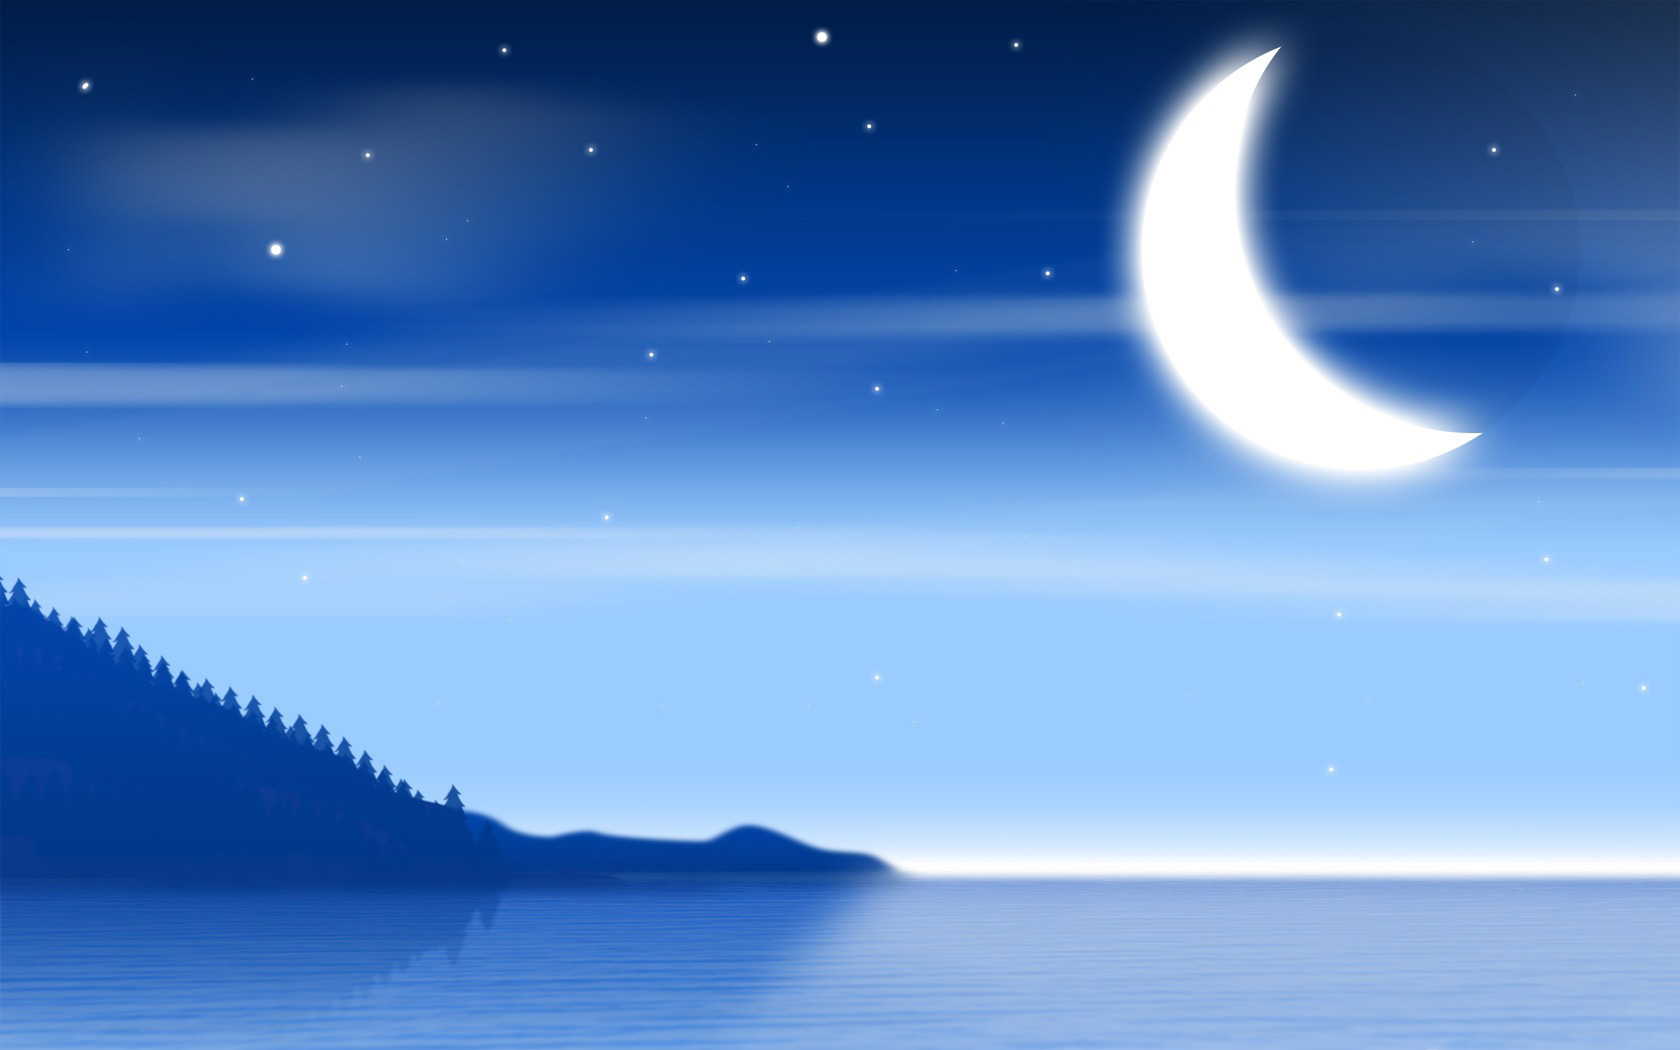 Night clipart night scenery. Nature free illustration of